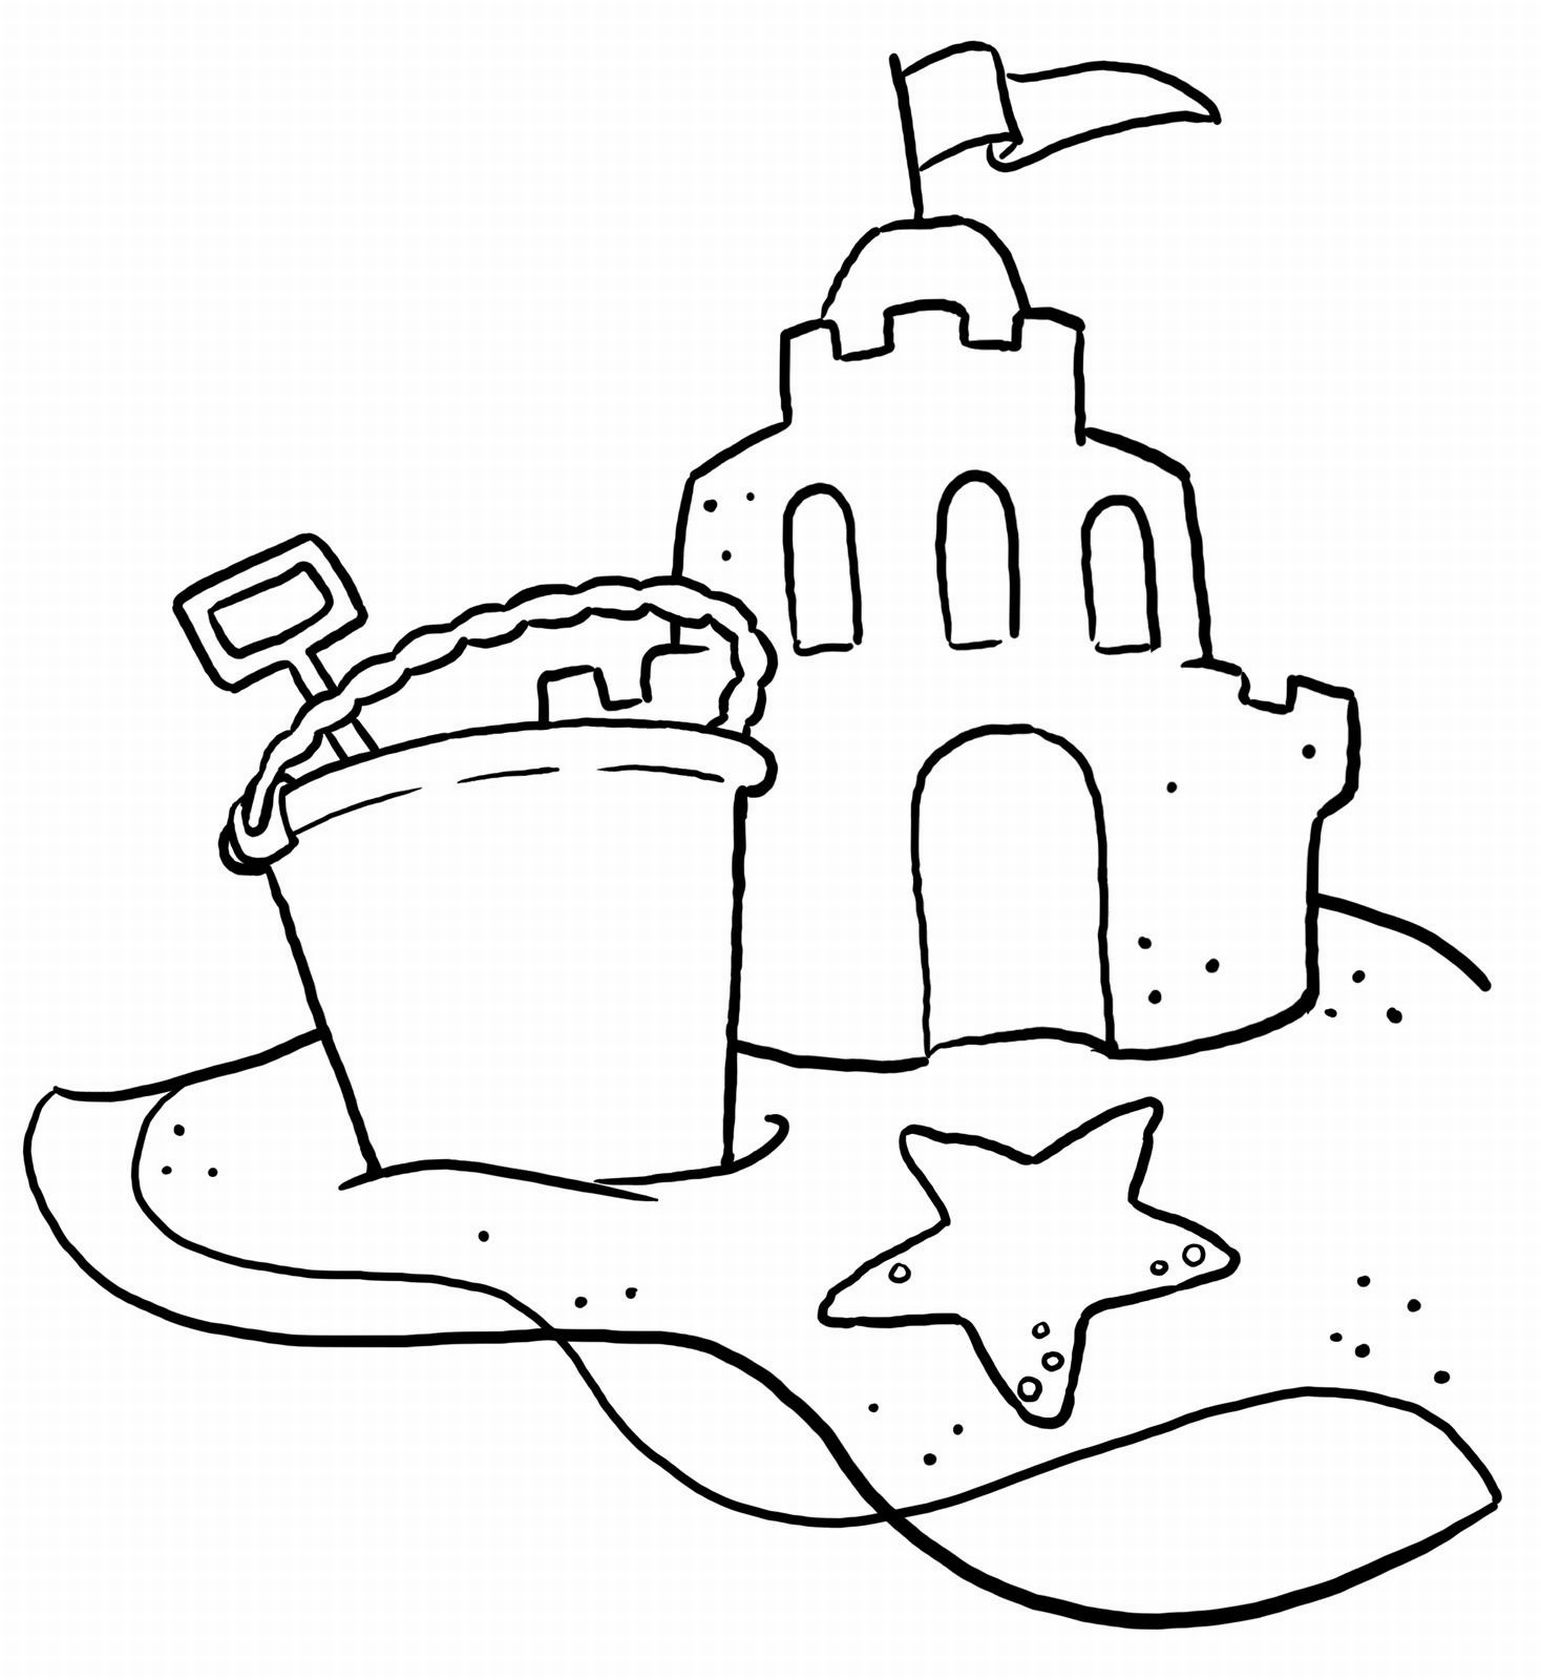 beach cartoon coloring pages free printable beach coloring pages for kids beach cartoon coloring pages